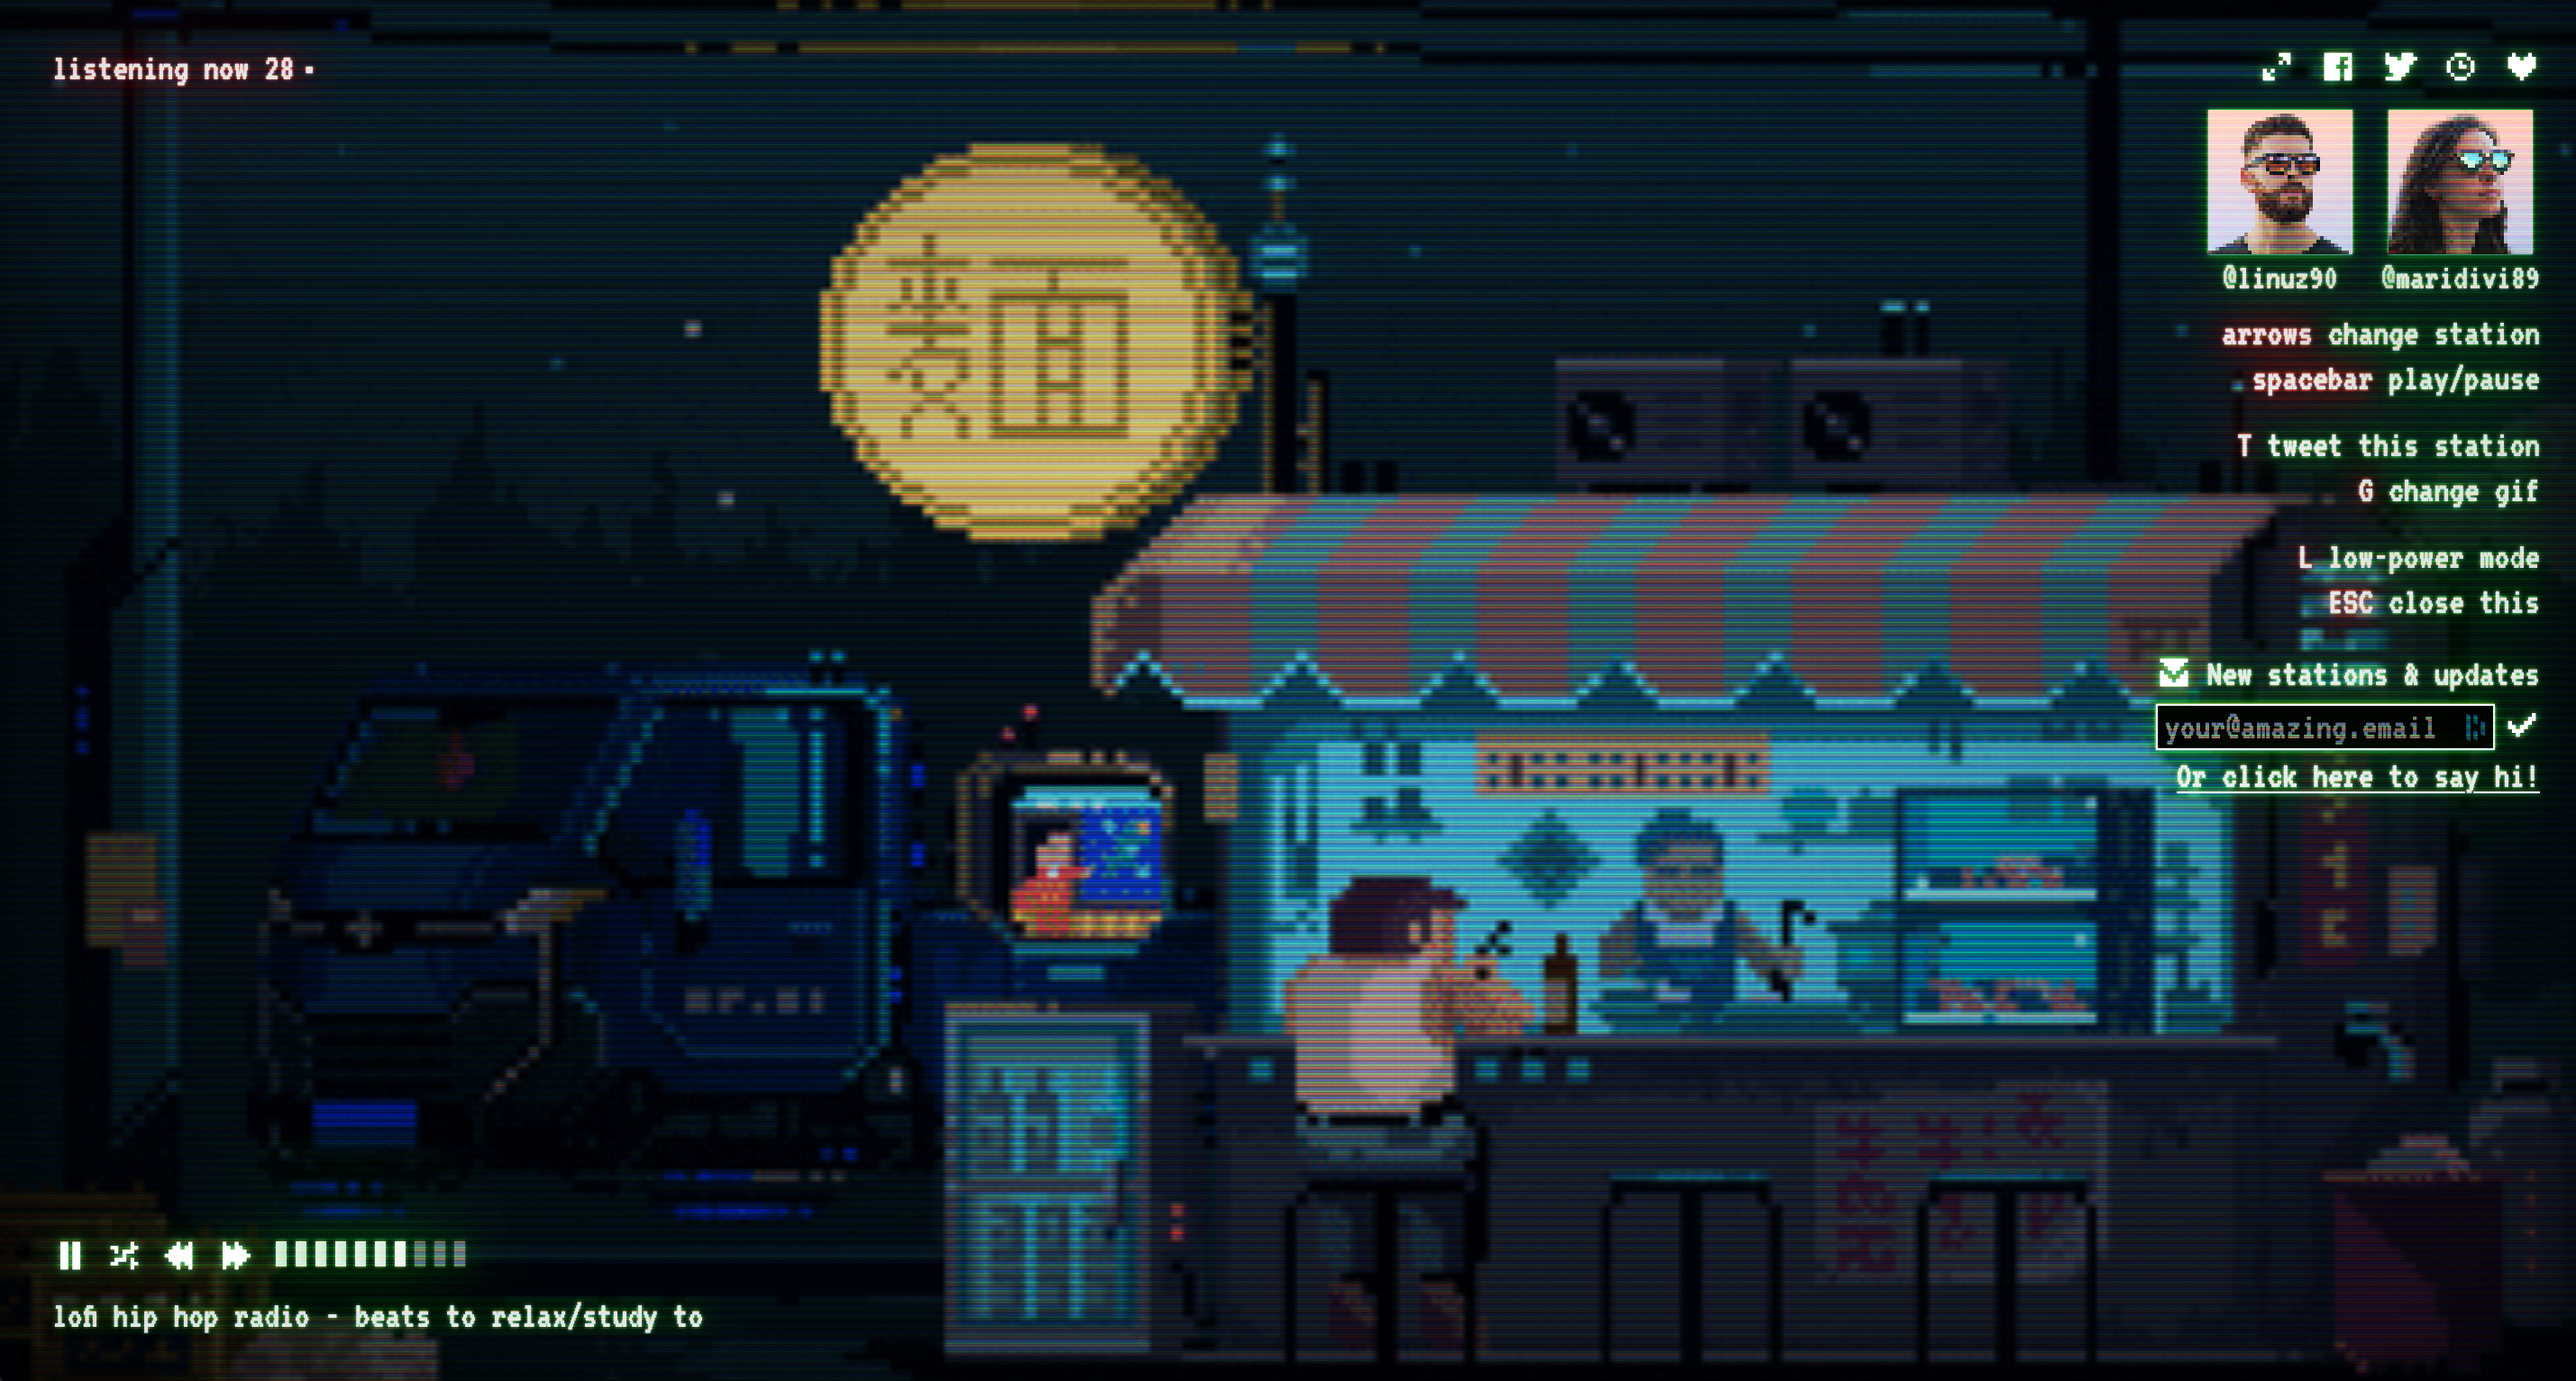 lofi.cafe showing a soothing gif while playing some music